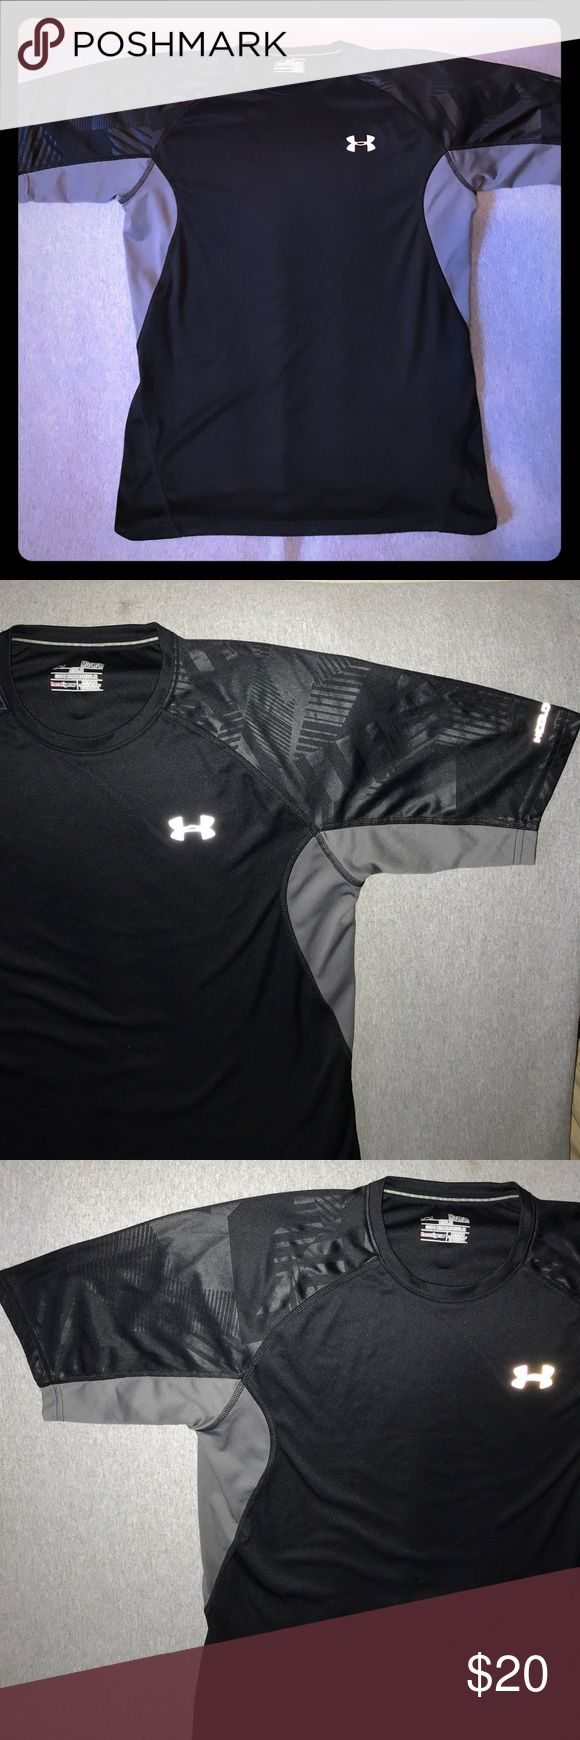 Under Armour ColdBlack HeatGear Men's Athletic Top For sale is a Size medium, regular fit, Under Armour ColdBlack HeatGear Men's Athletic Top. Item is in excellent condition and a must have for the athlete in your family. Shoulders incorporate a woven tribal design into material and gray color along underside of arms and rib cage. Please not in photos. Under Armour Shirts Tees - Short Sleeve